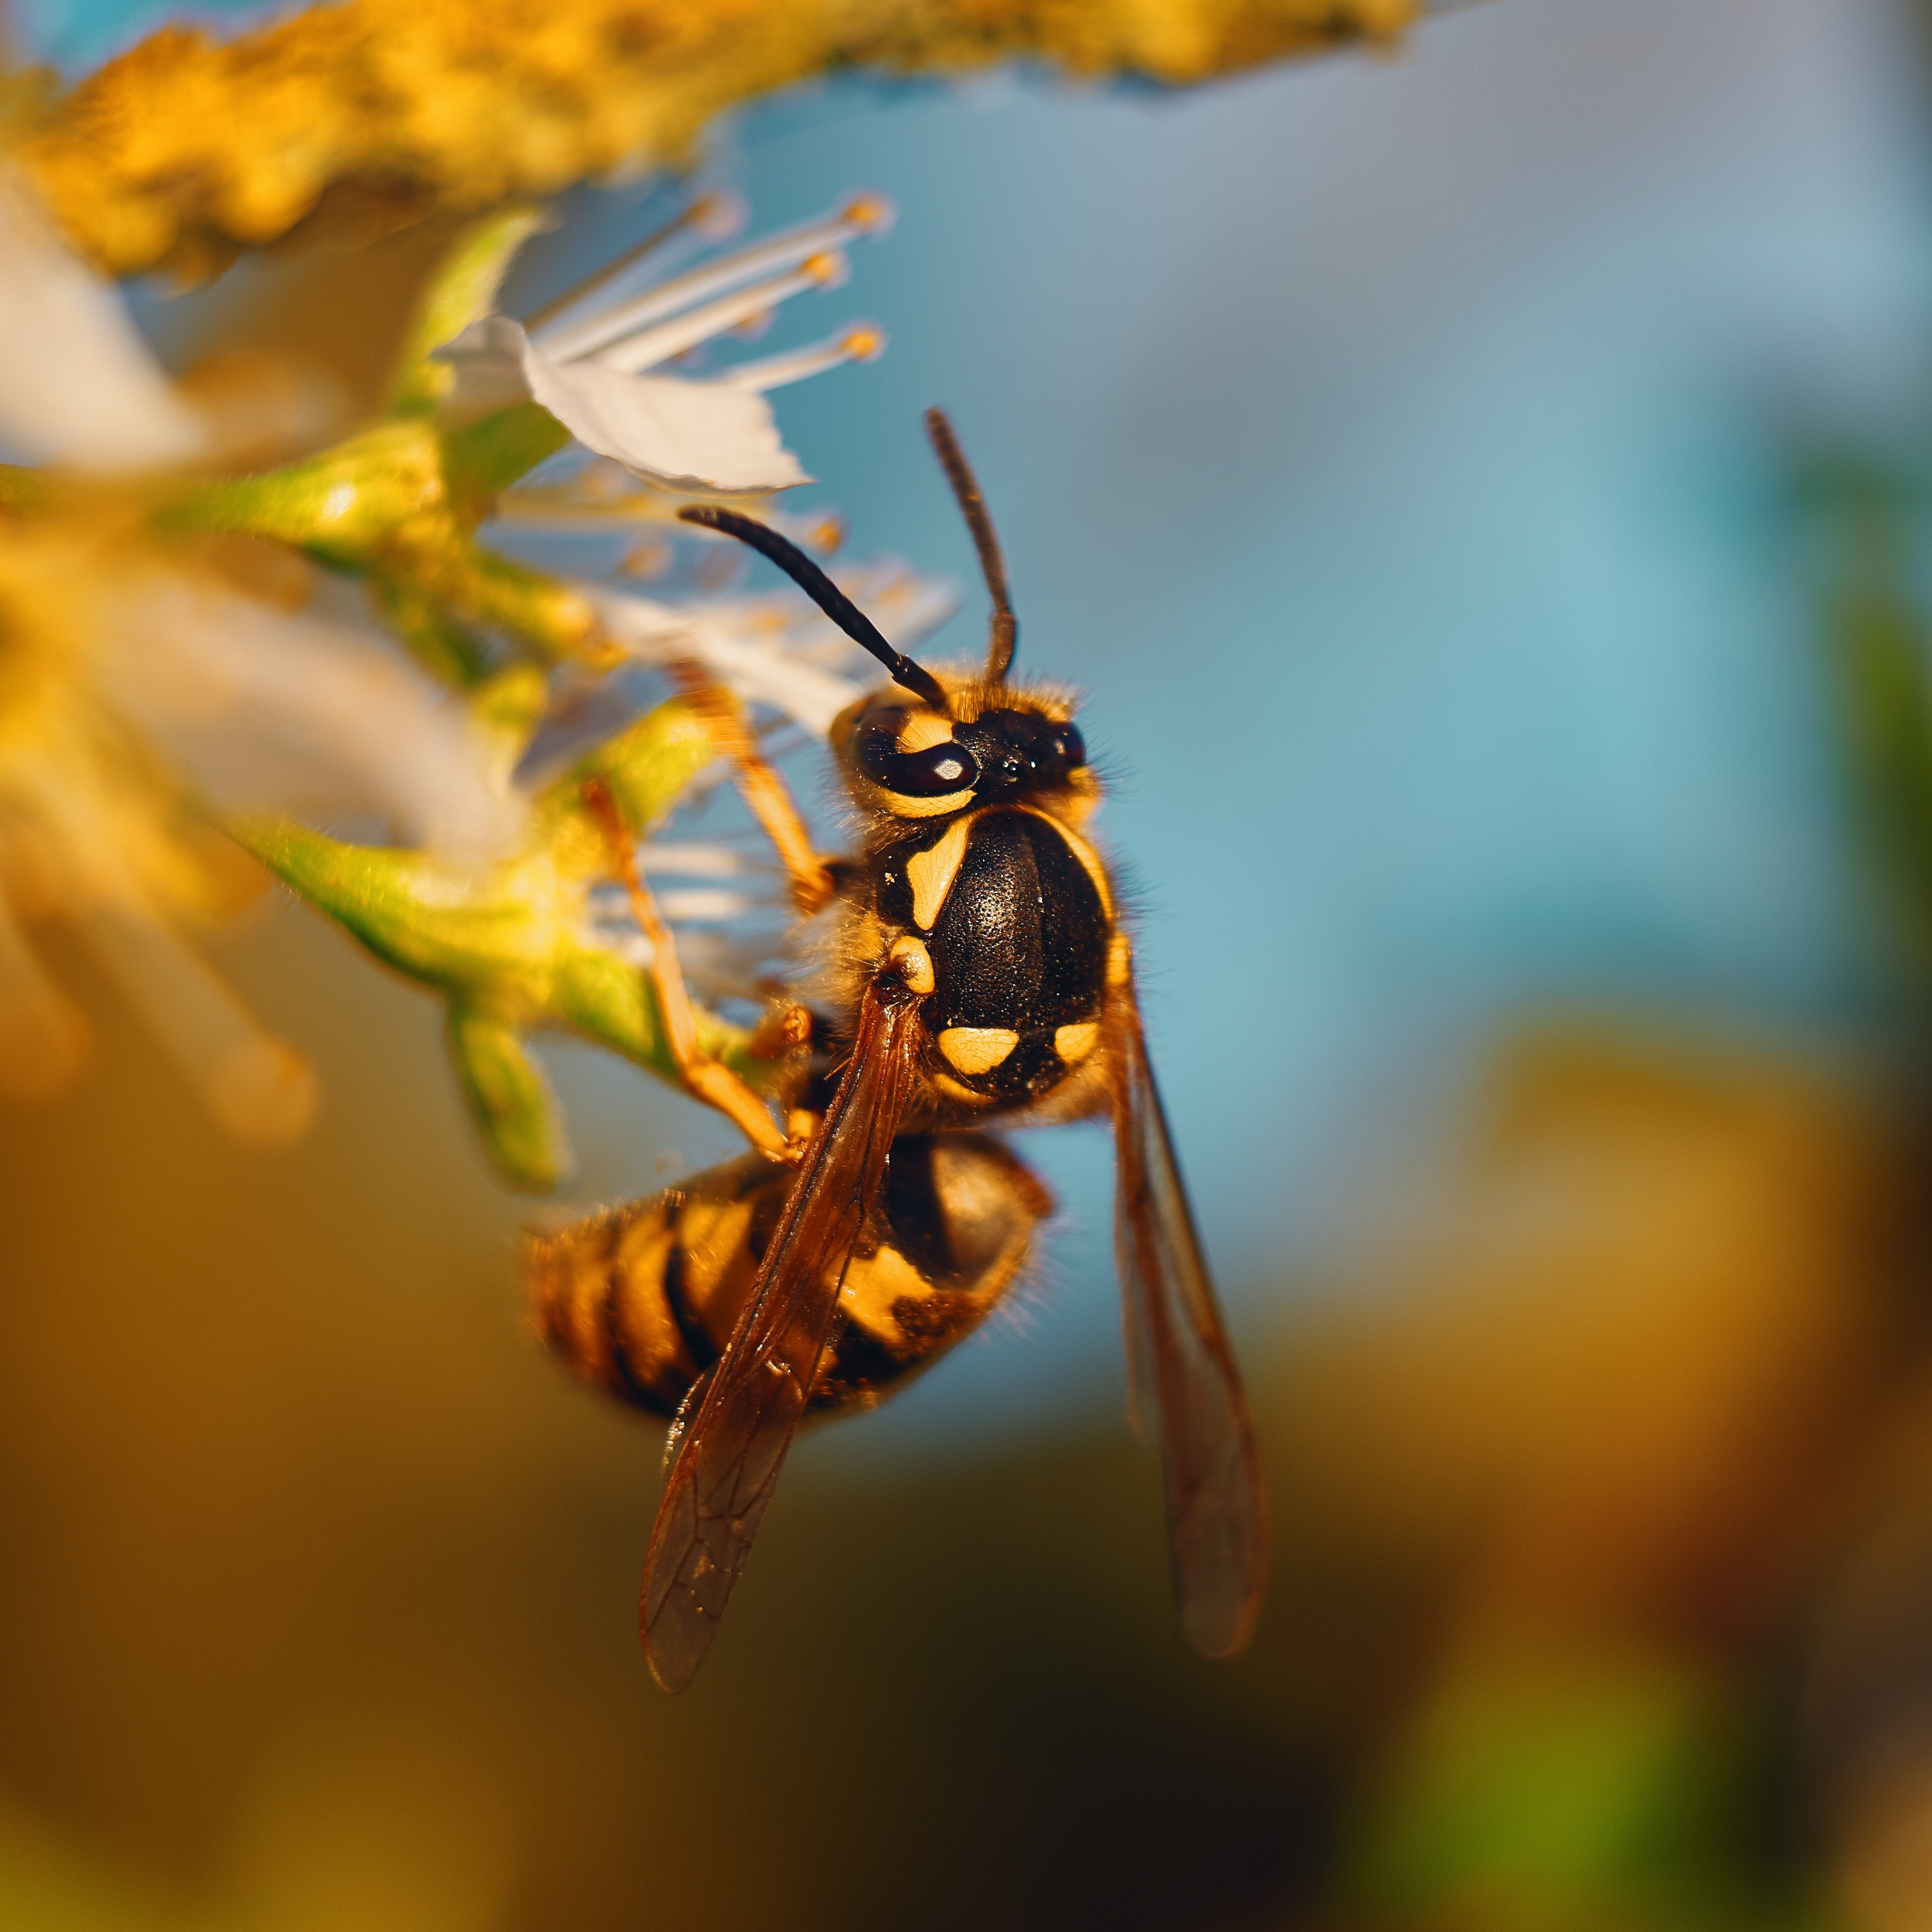 Wasp sitting on a flower | Thomas Millot on Unsplash